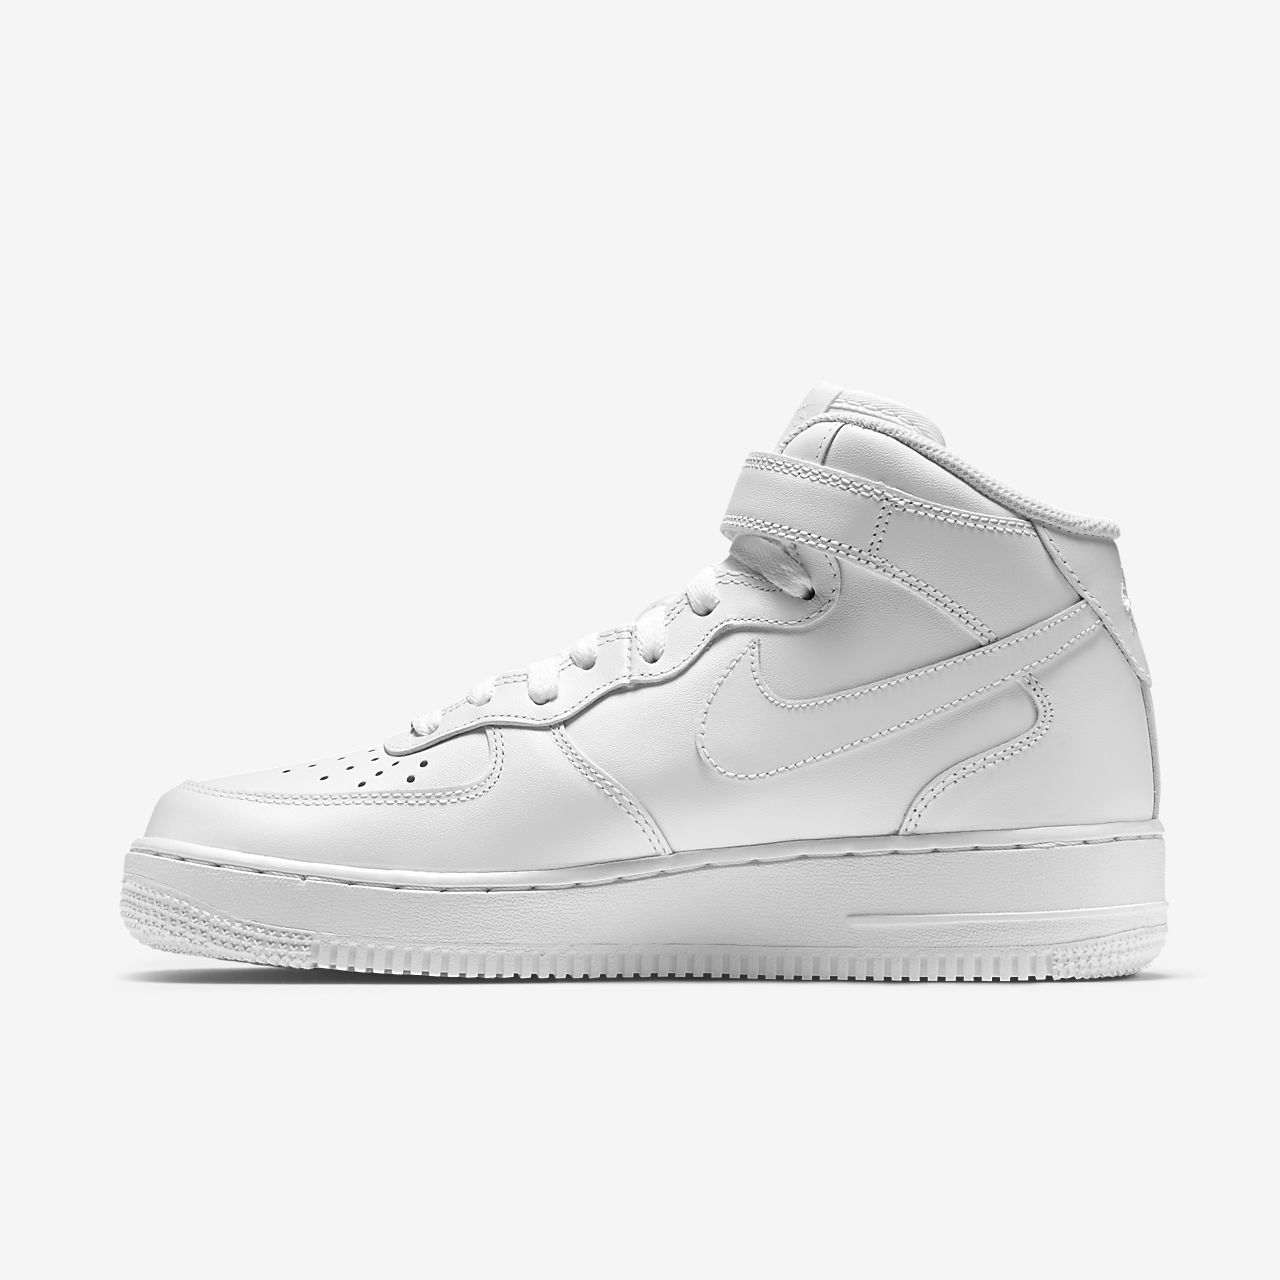 san francisco 874b3 a0238 scarpa nike air force 1 mid  07 bianco bianco 366731-100